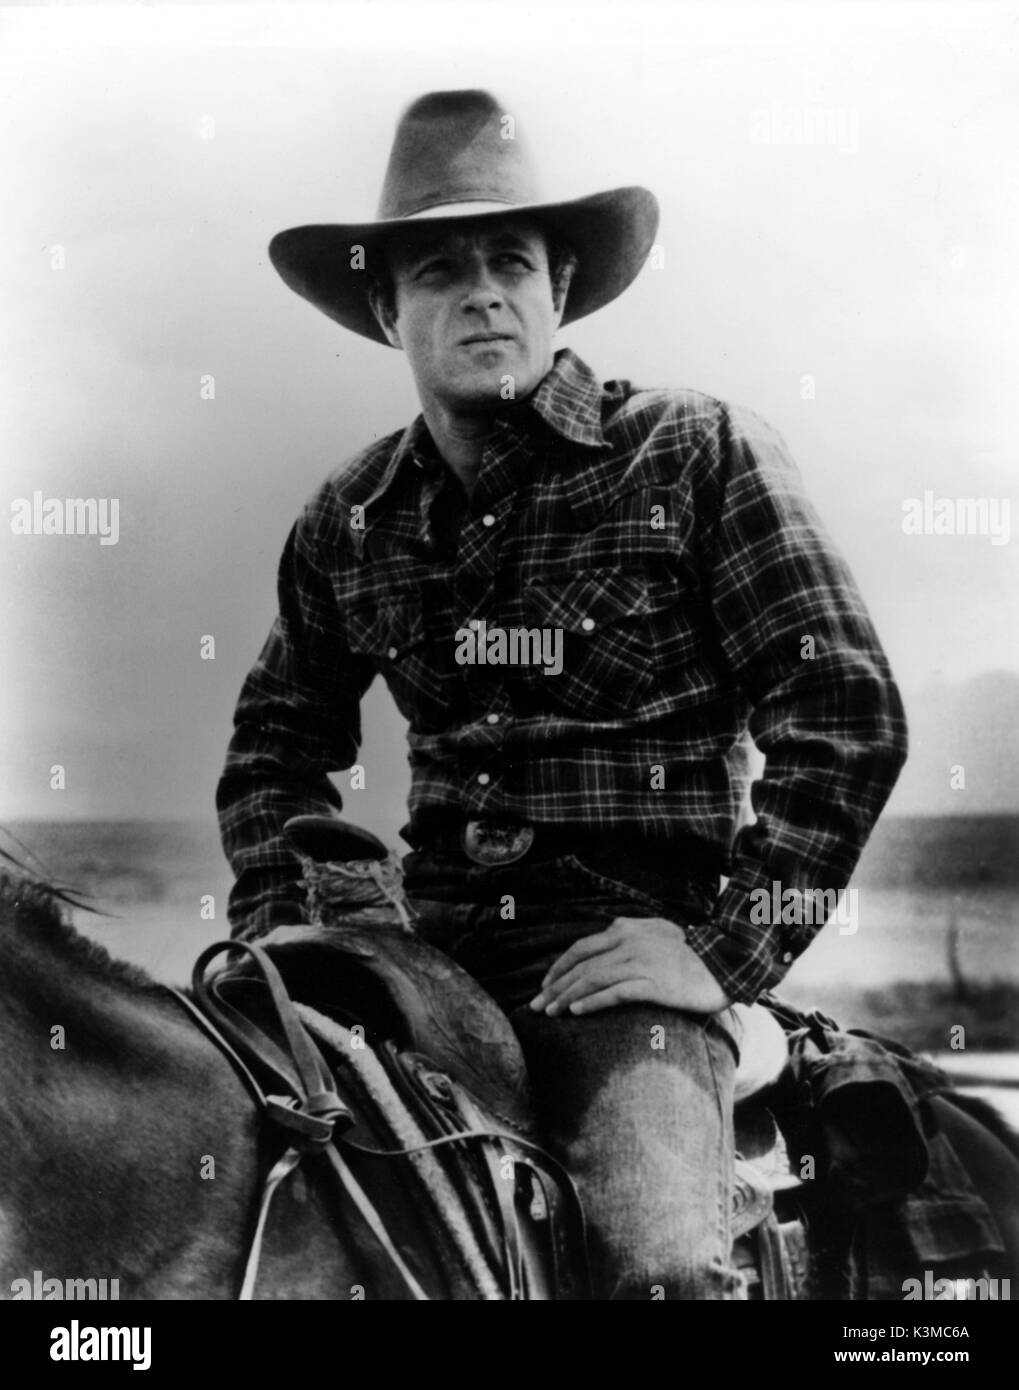 COMES A HORSEMAN [US 1978] JAMES CAAN     Date: 1978 - Stock Image